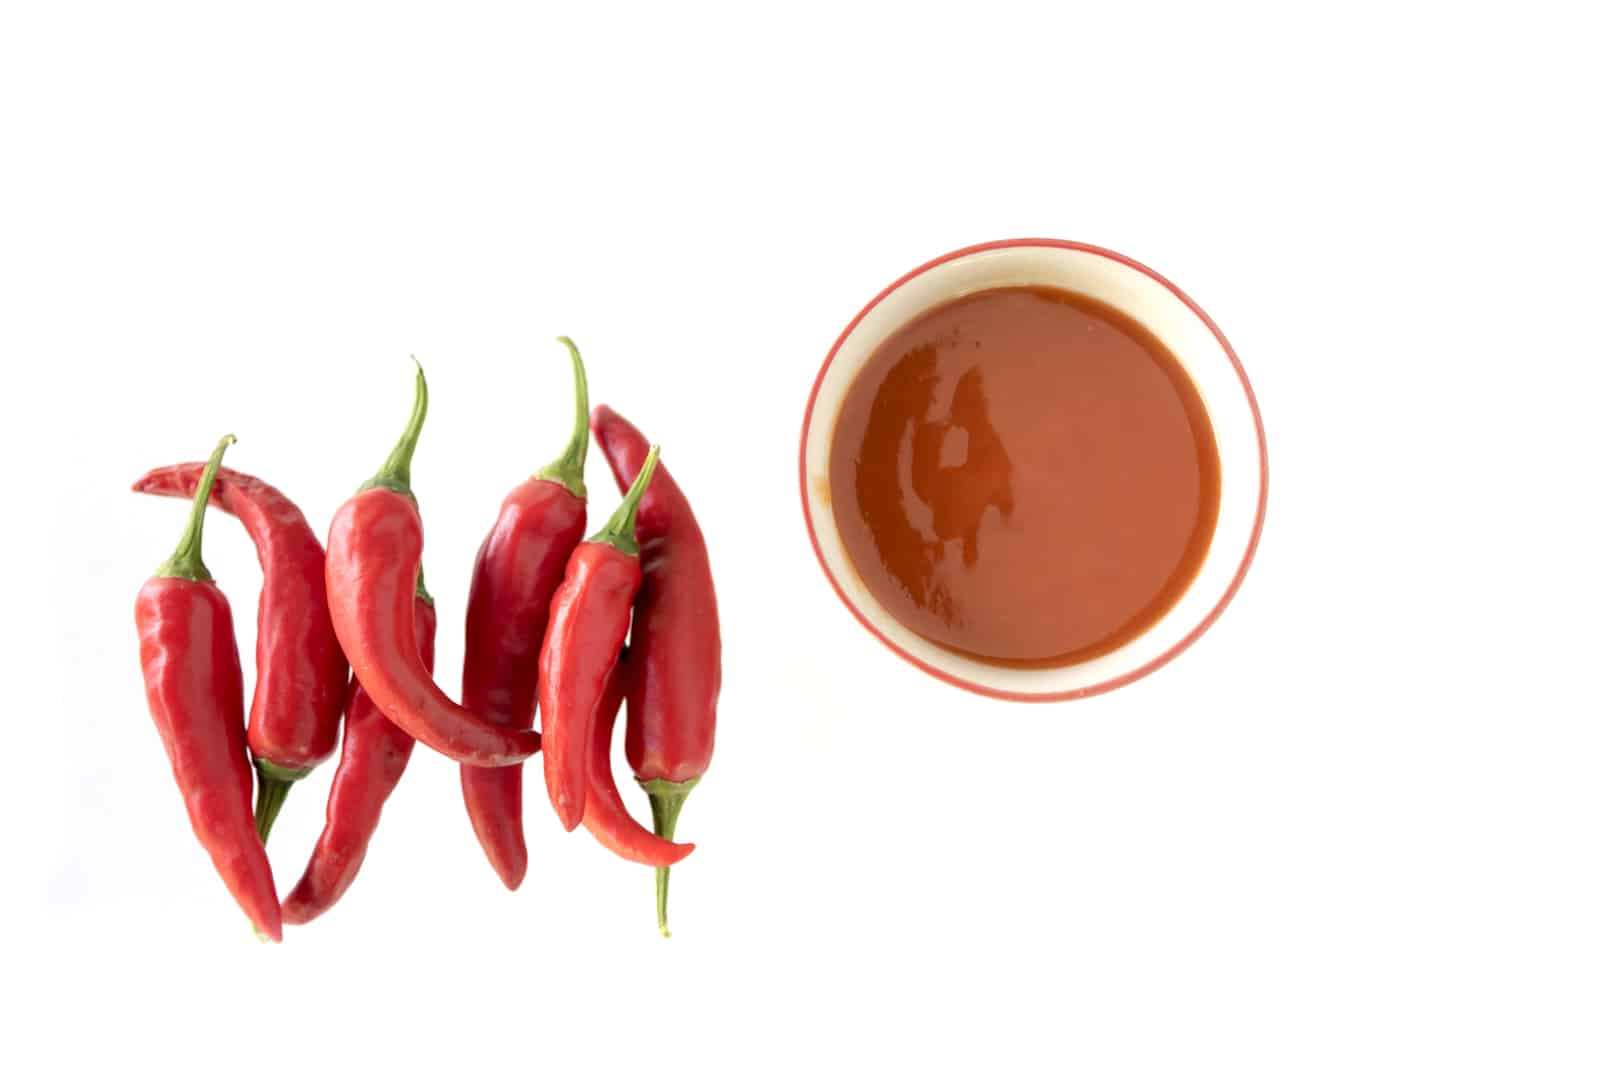 What is Chili Sauce?